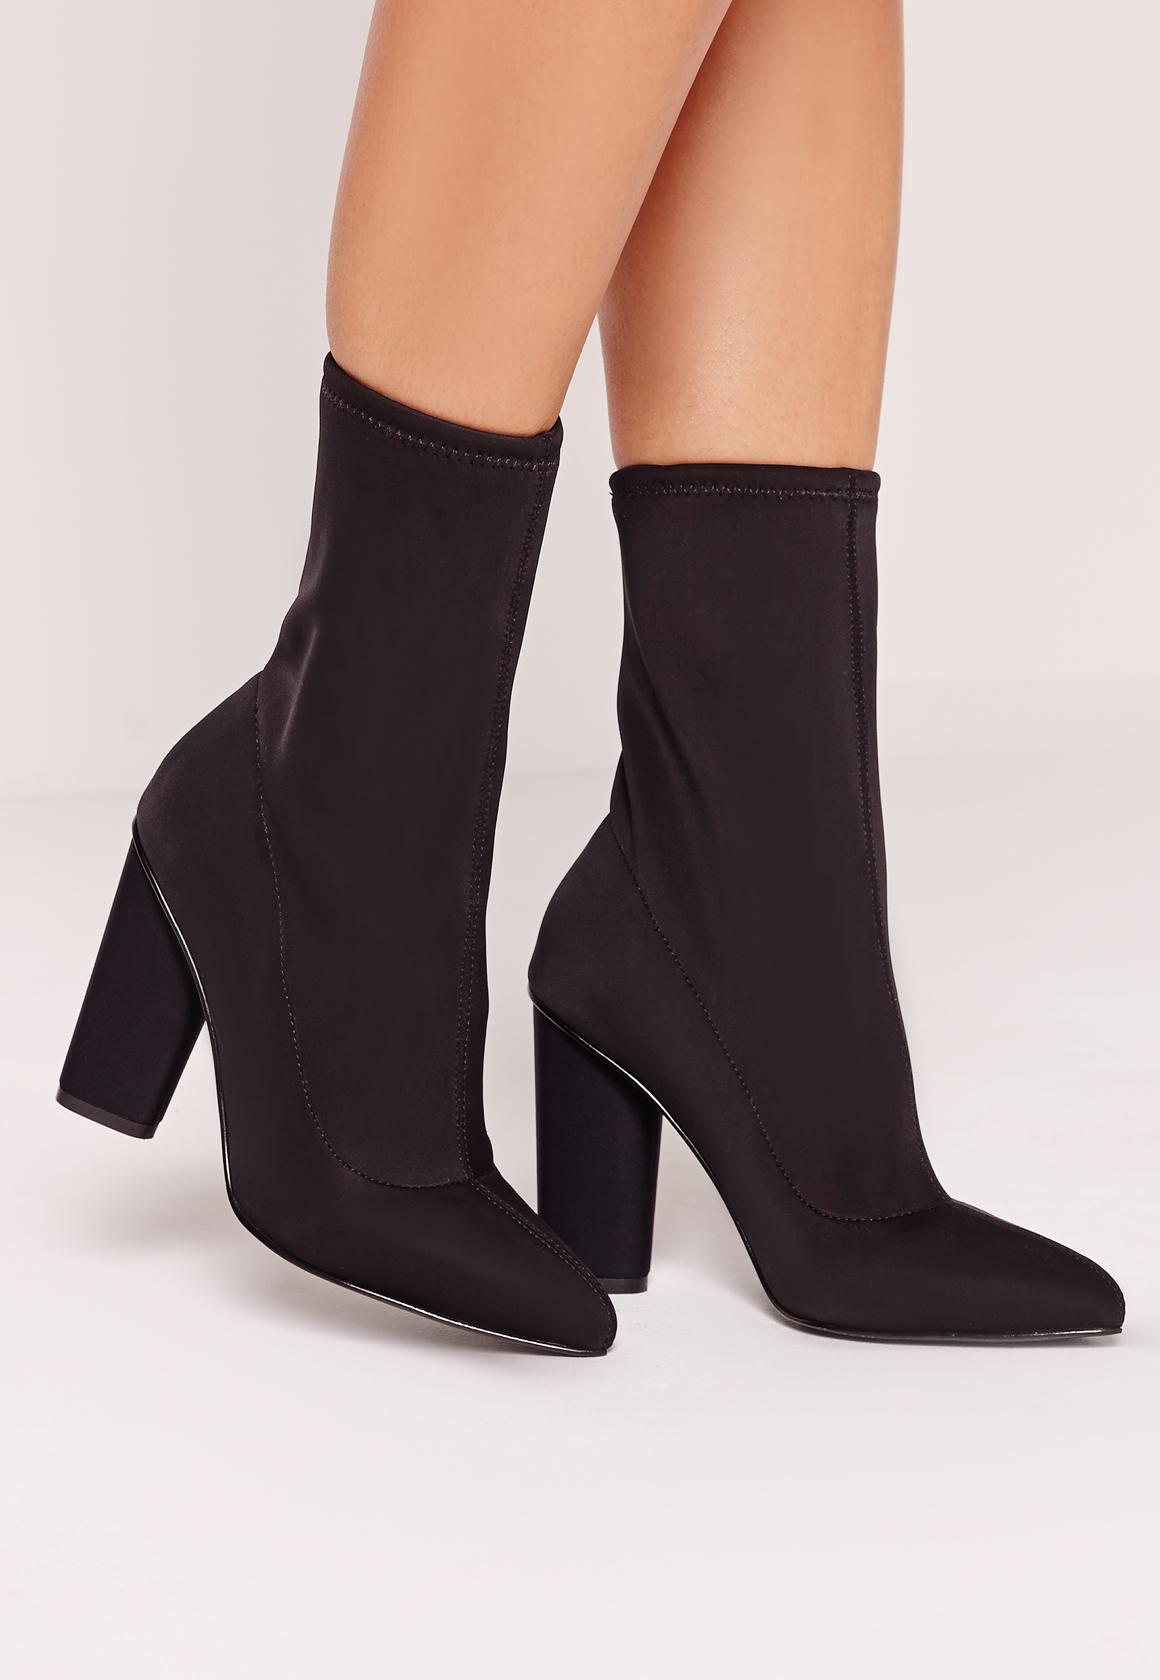 Pointed Toe Neoprene Heeled Ankle Boots Black | Missguided